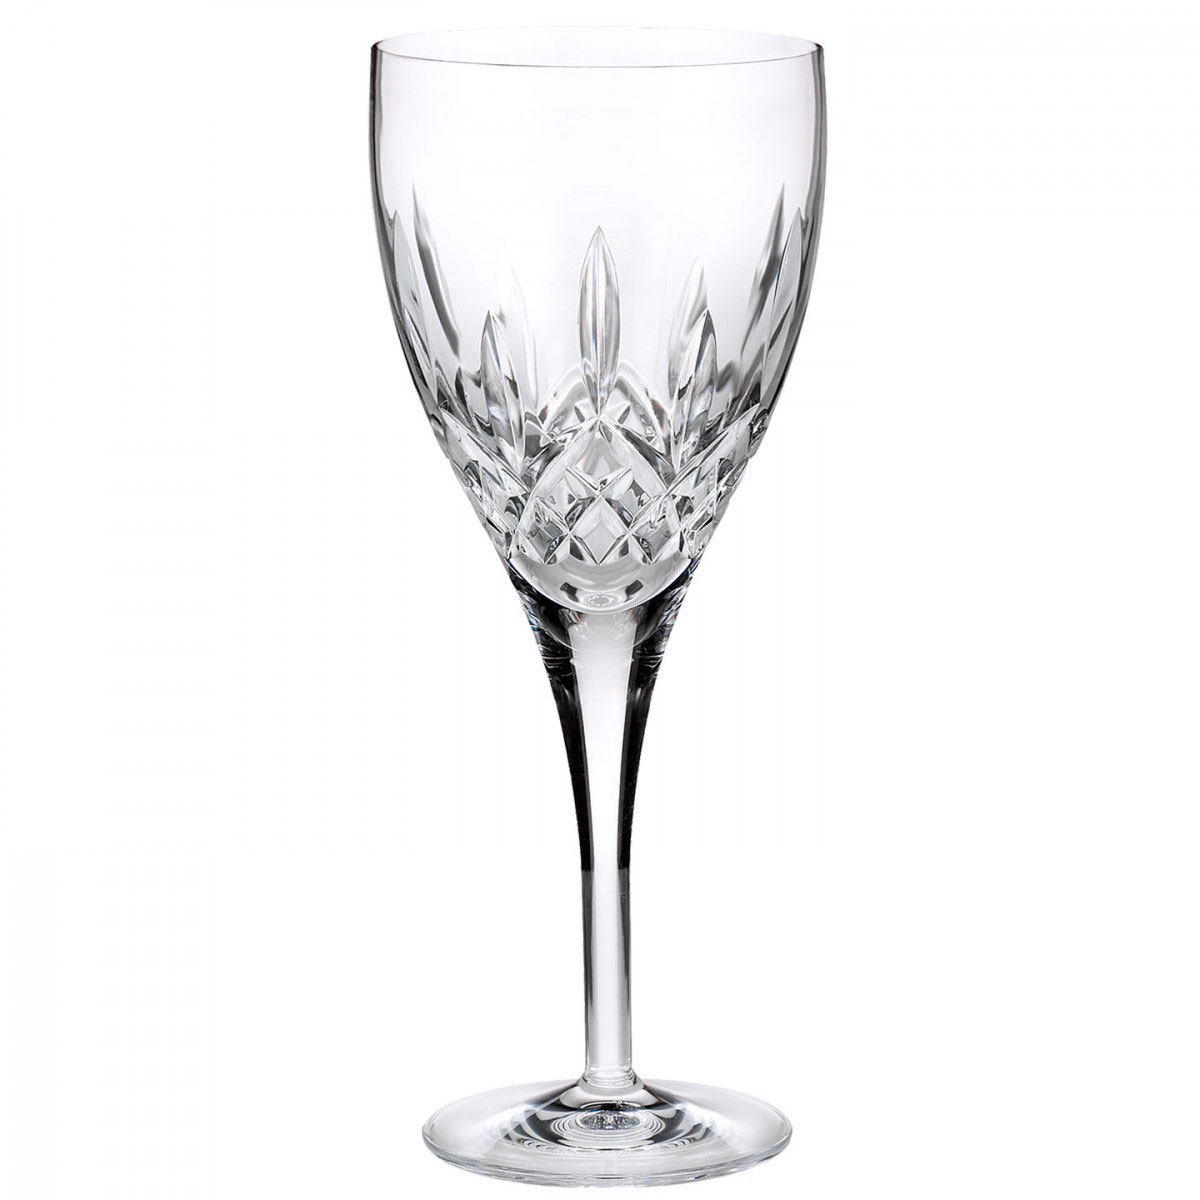 Waterford Lismore Nouveau Crystal Goblet, Single